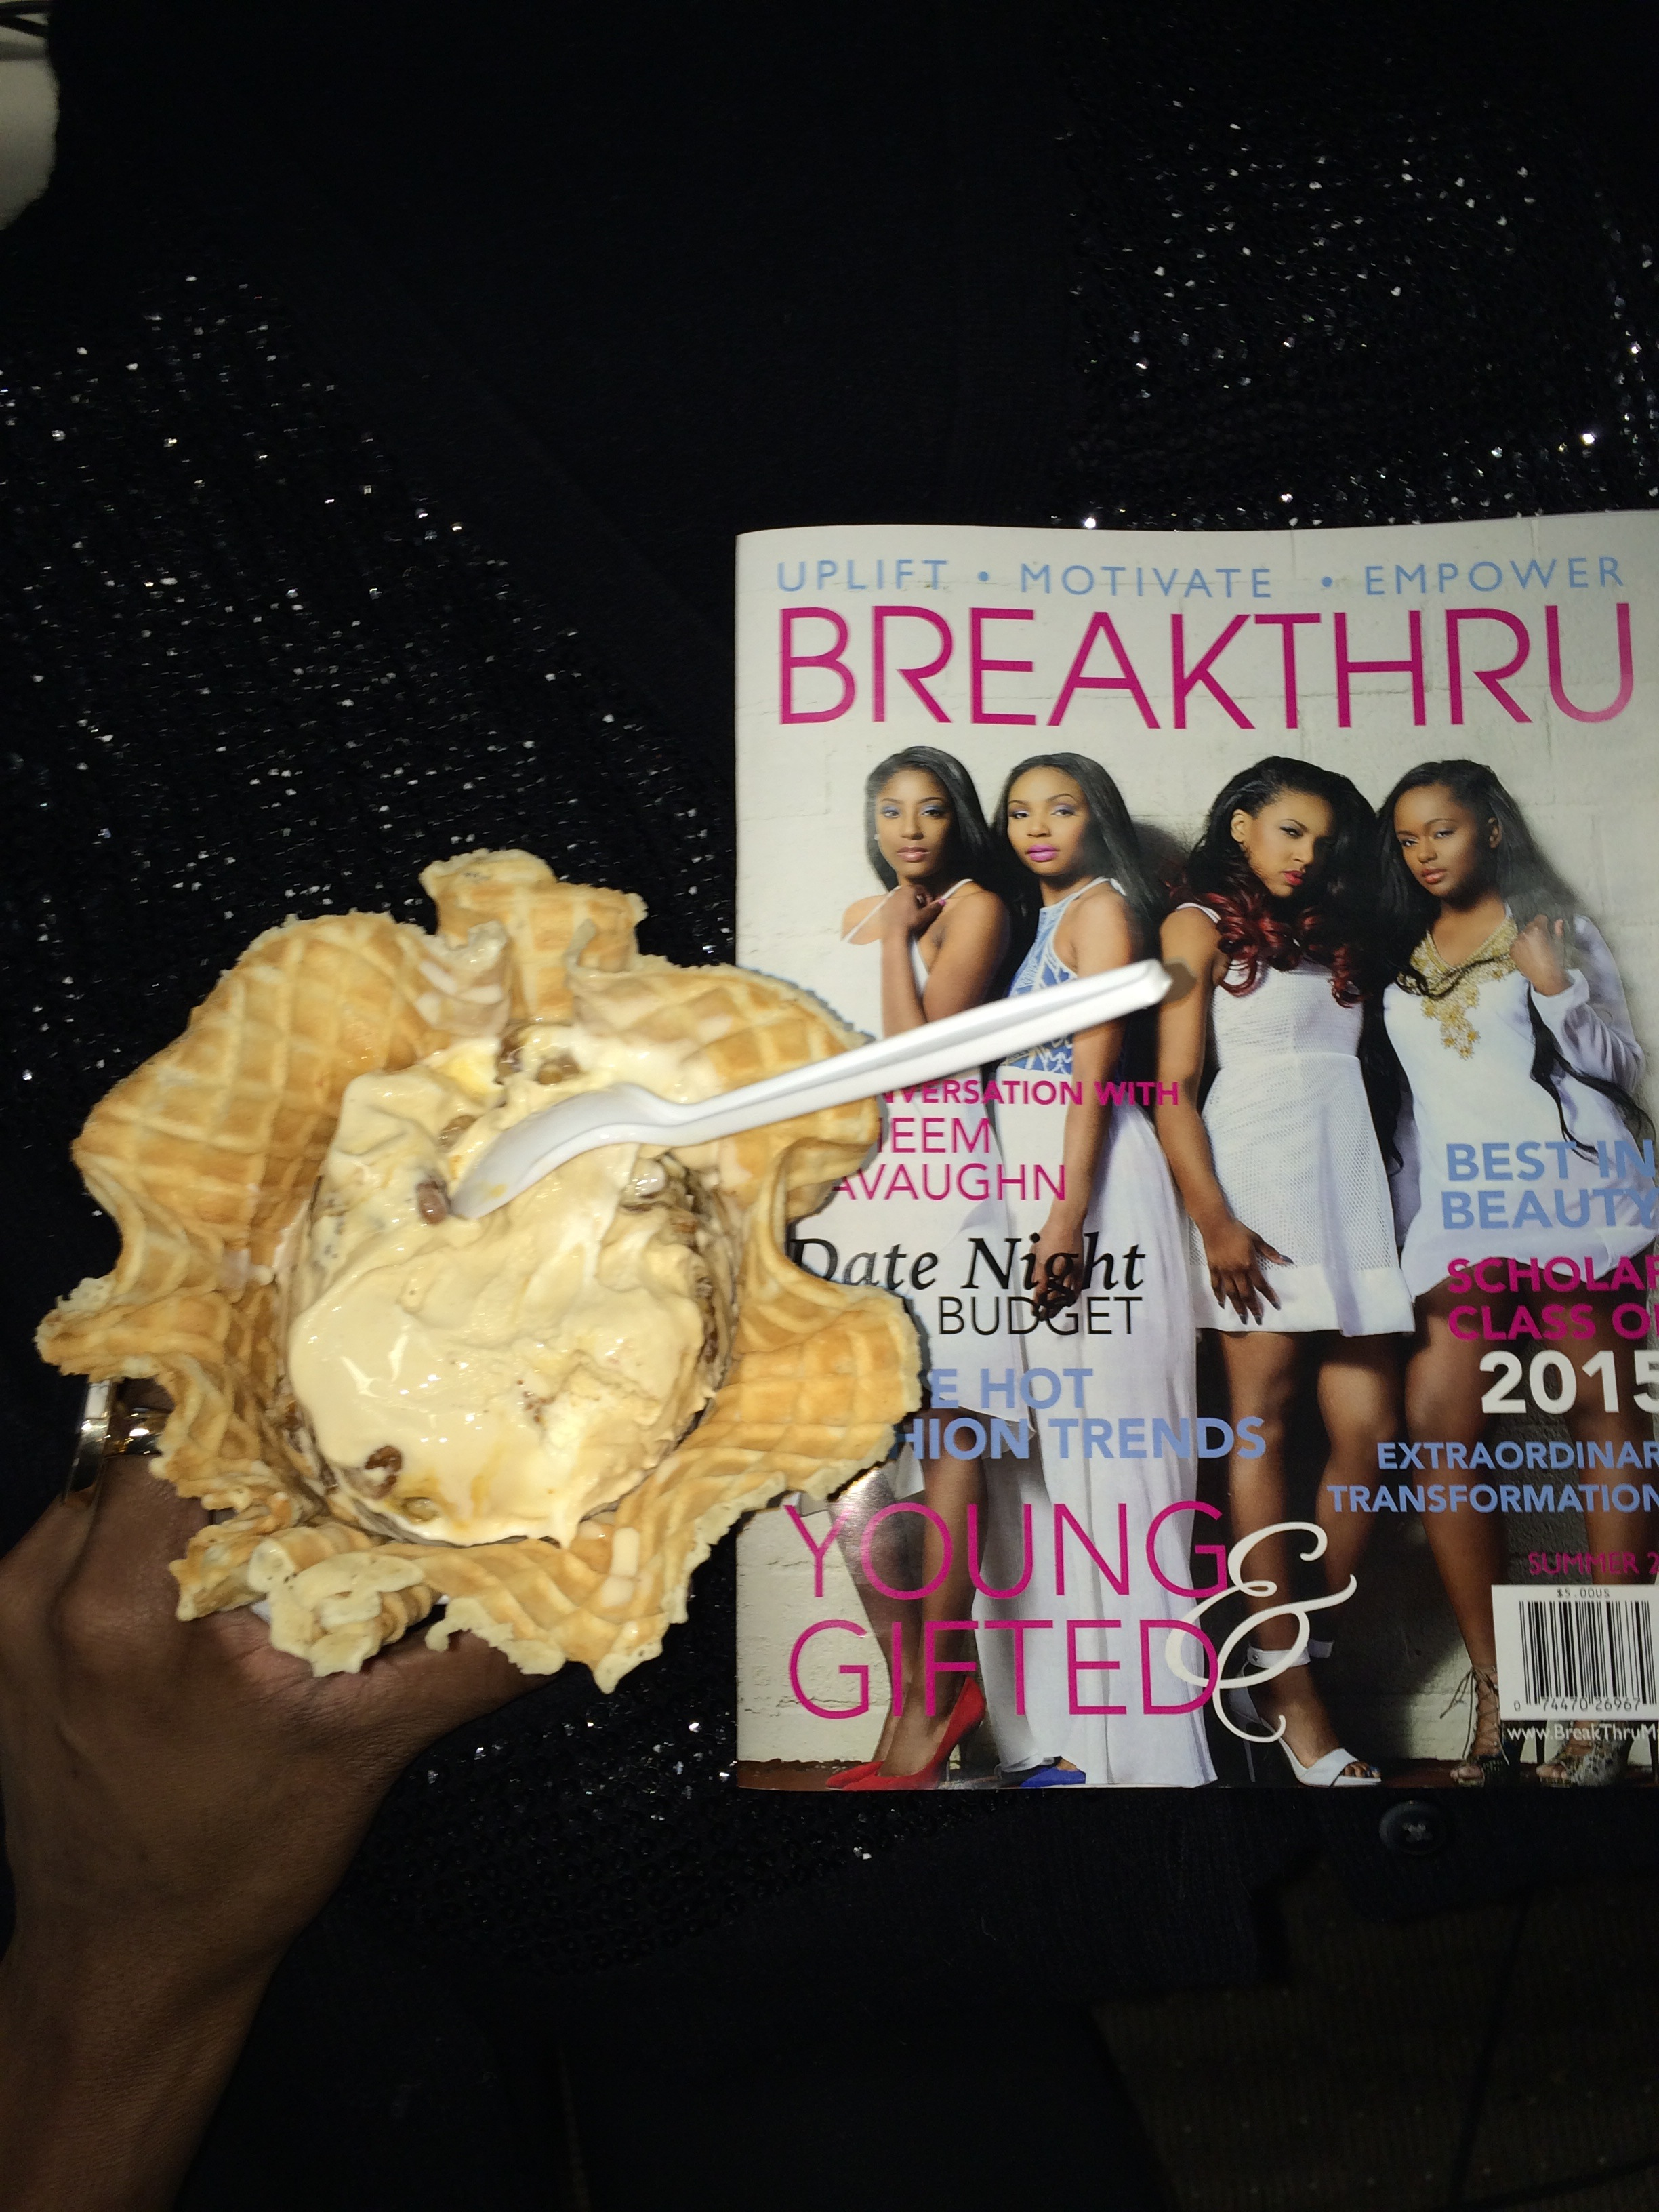 Ooh La La Blog- Jamiese-Price-Featured-In-Breakthru- Magazine-Summer-2015-5